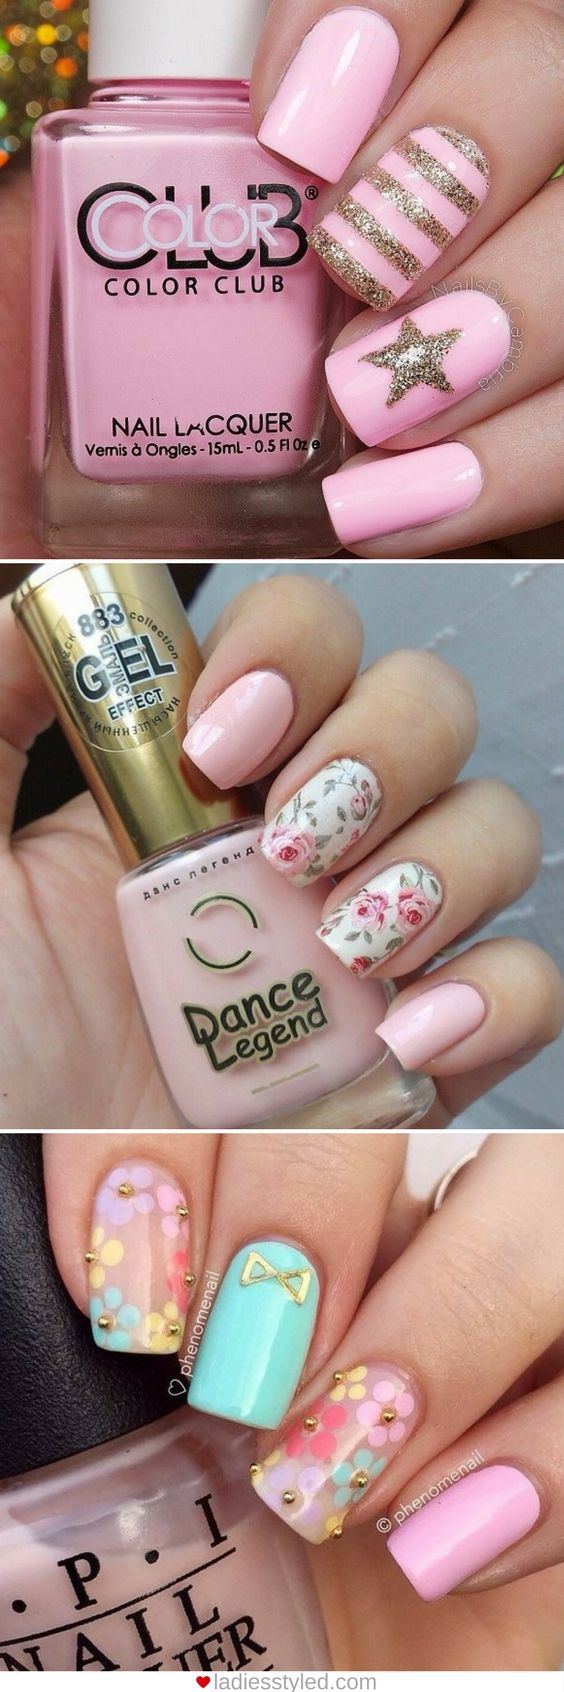 383 best summer nail art designs & ideas images on pinterest